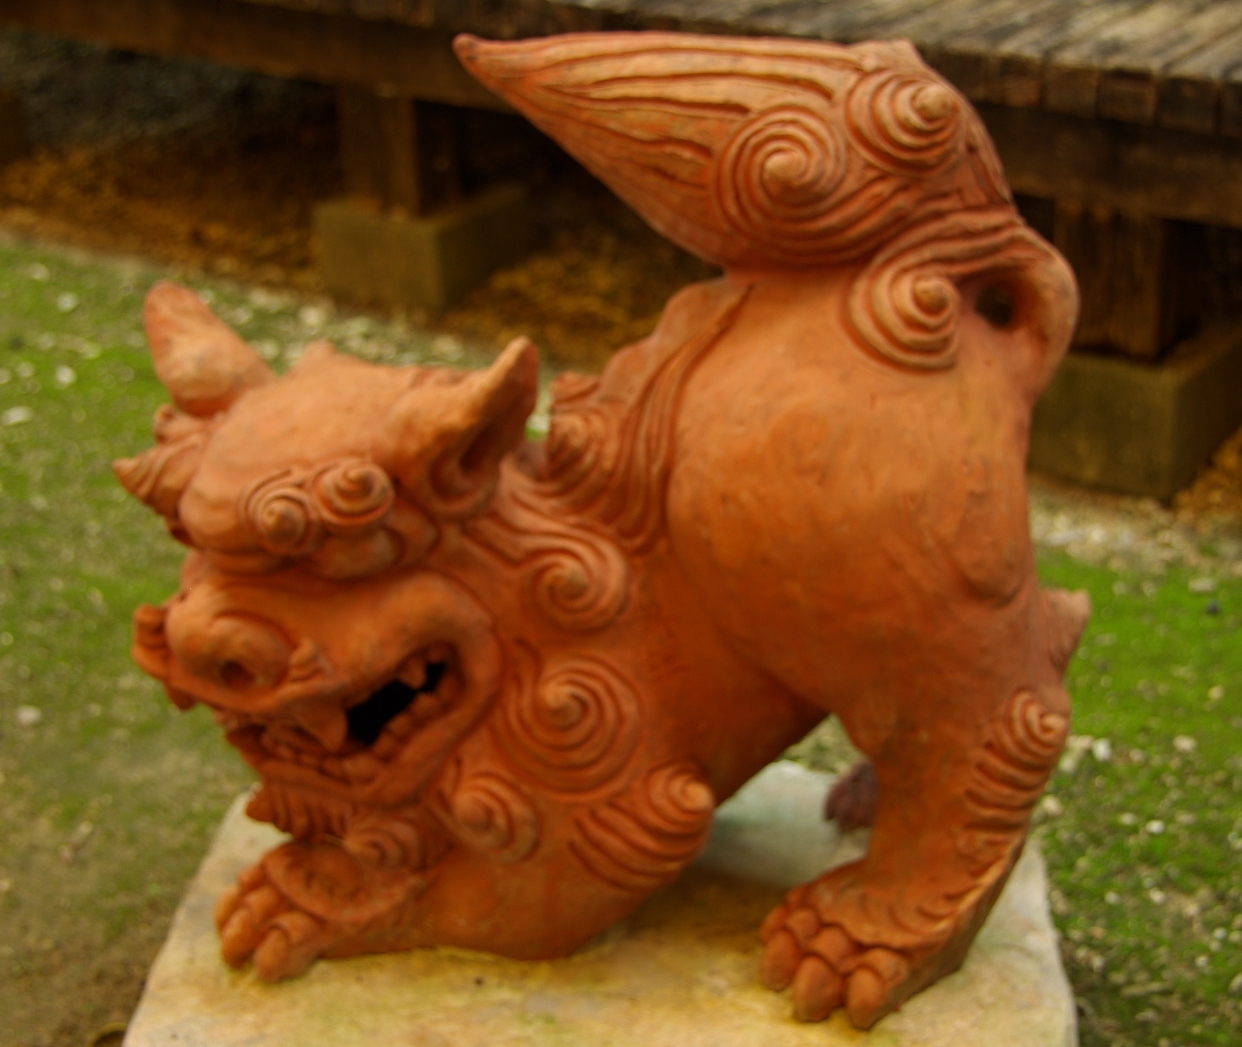 八重山のシーサーたち/Shisa of Yaeyama Islands, Okinawa_e0140365_15145776.jpg